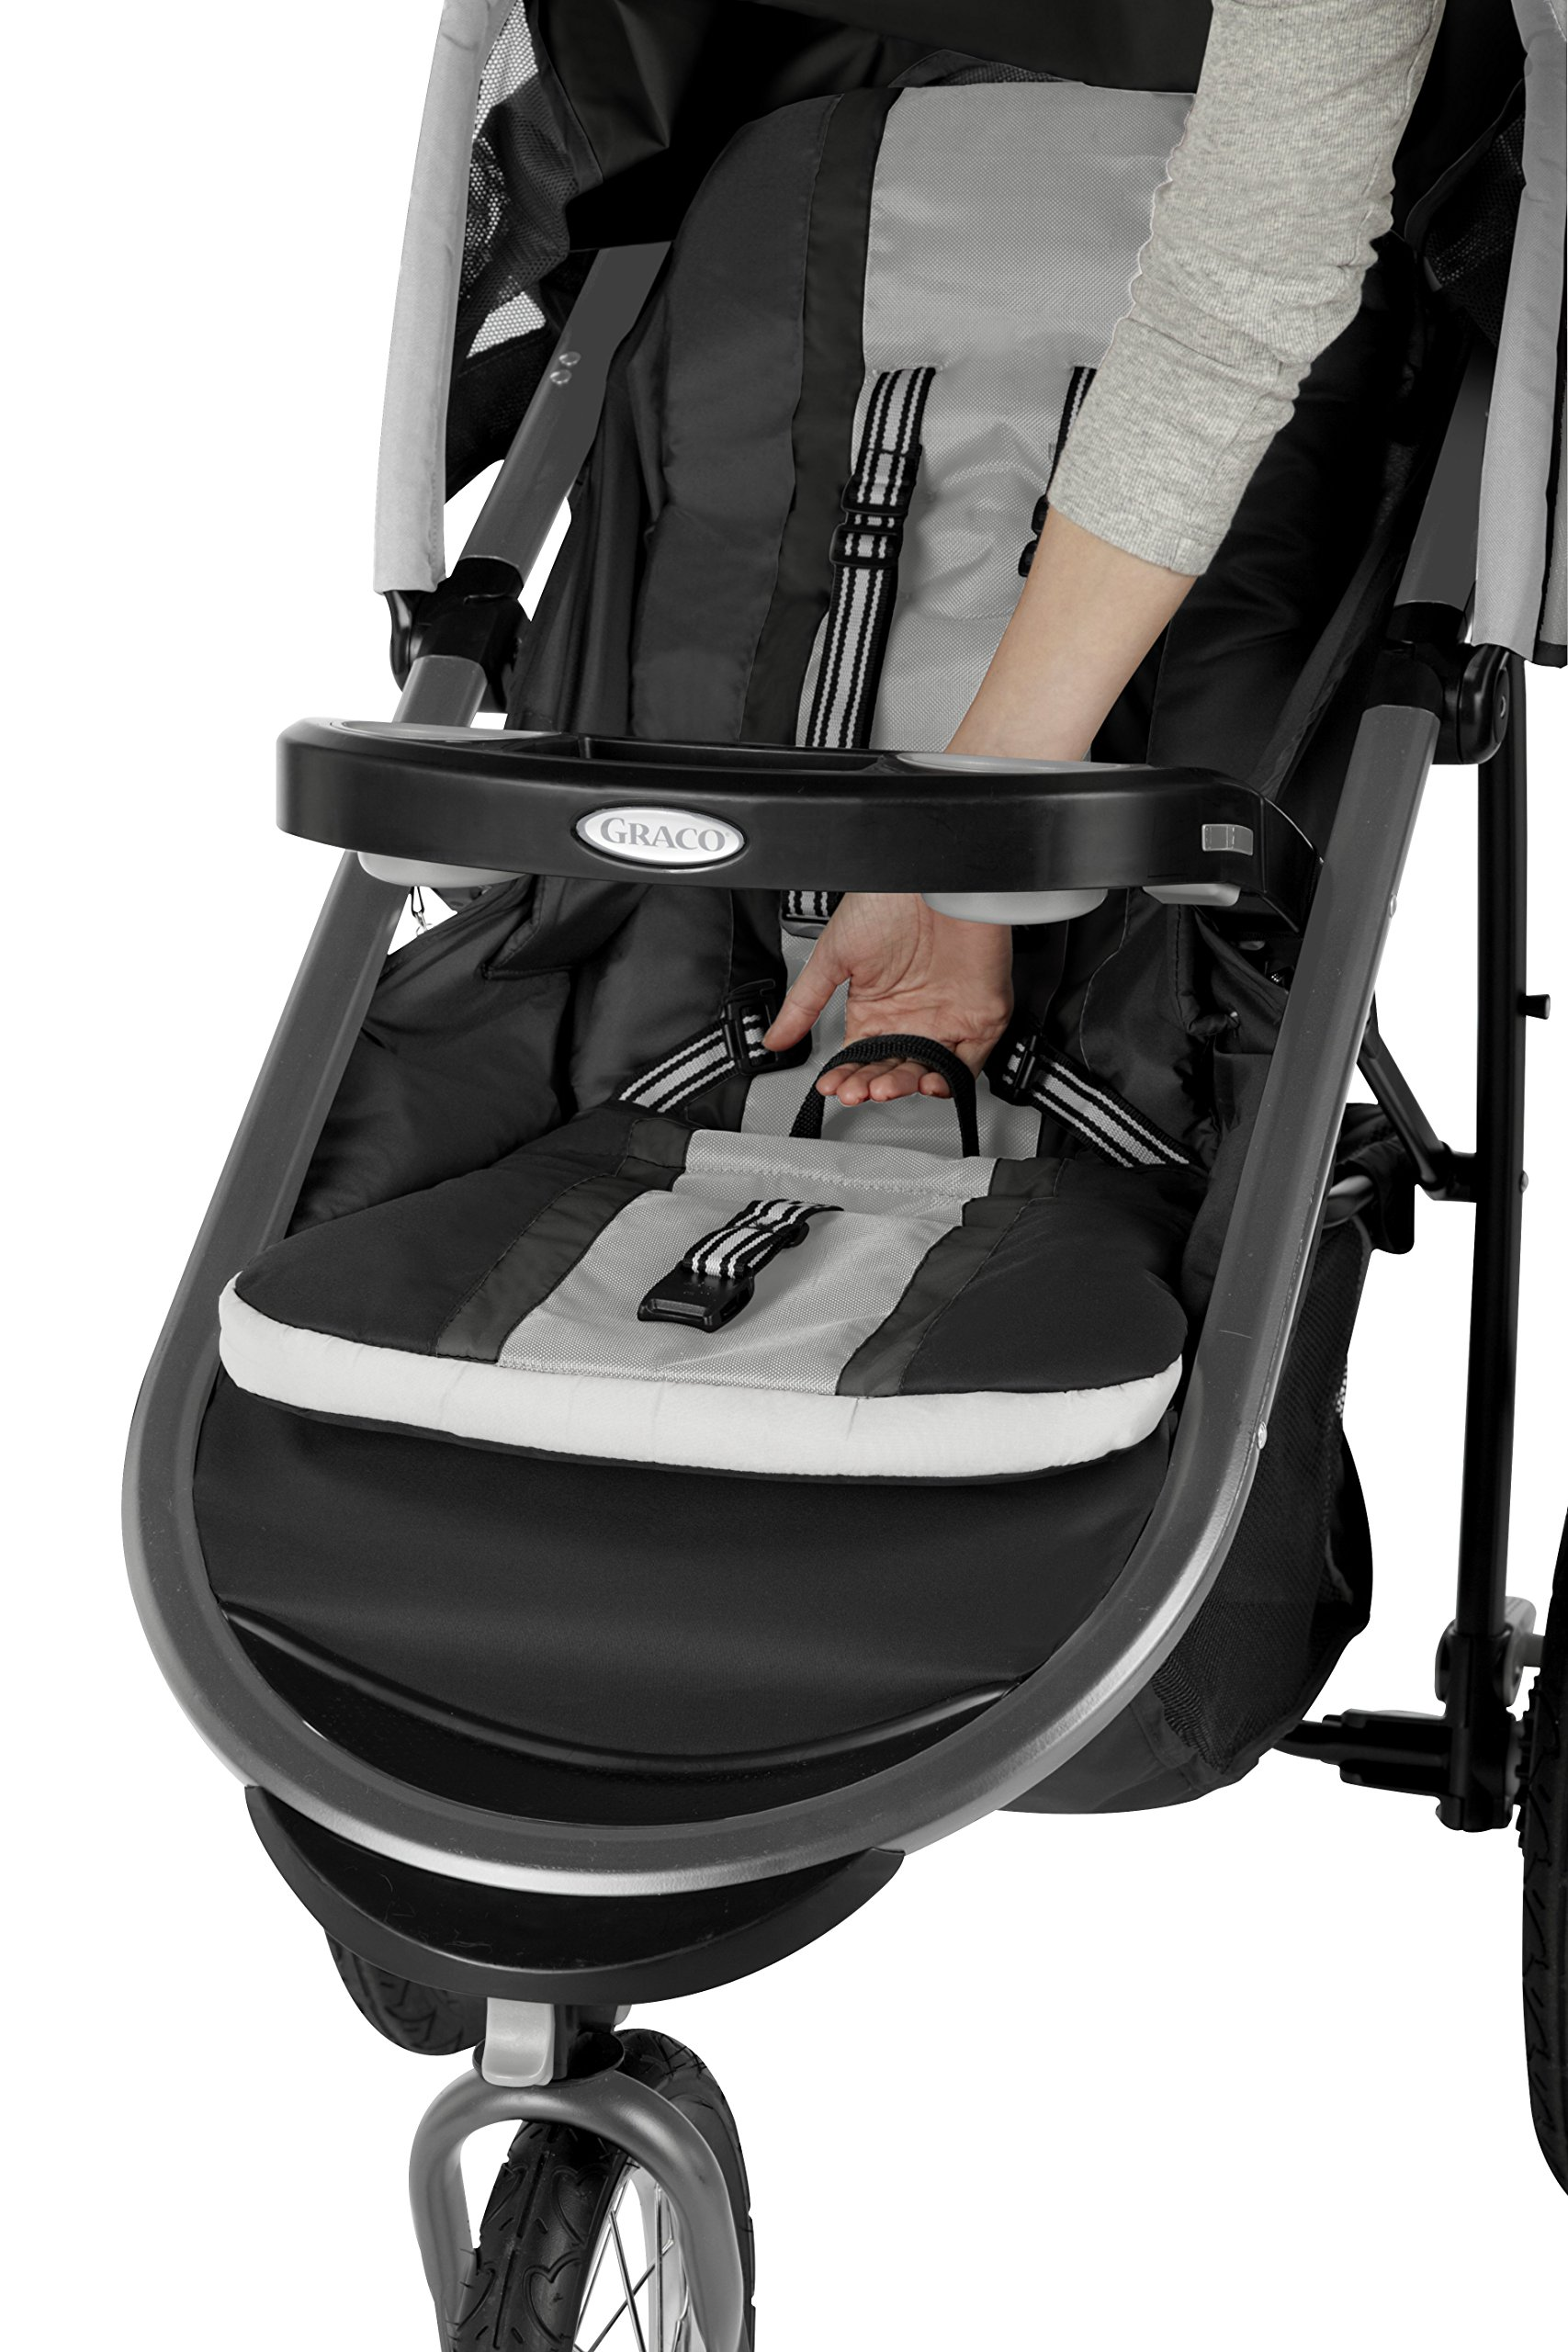 Graco Fastaction Fold Jogger Click Connect Stroller, Gotham by Graco (Image #3)